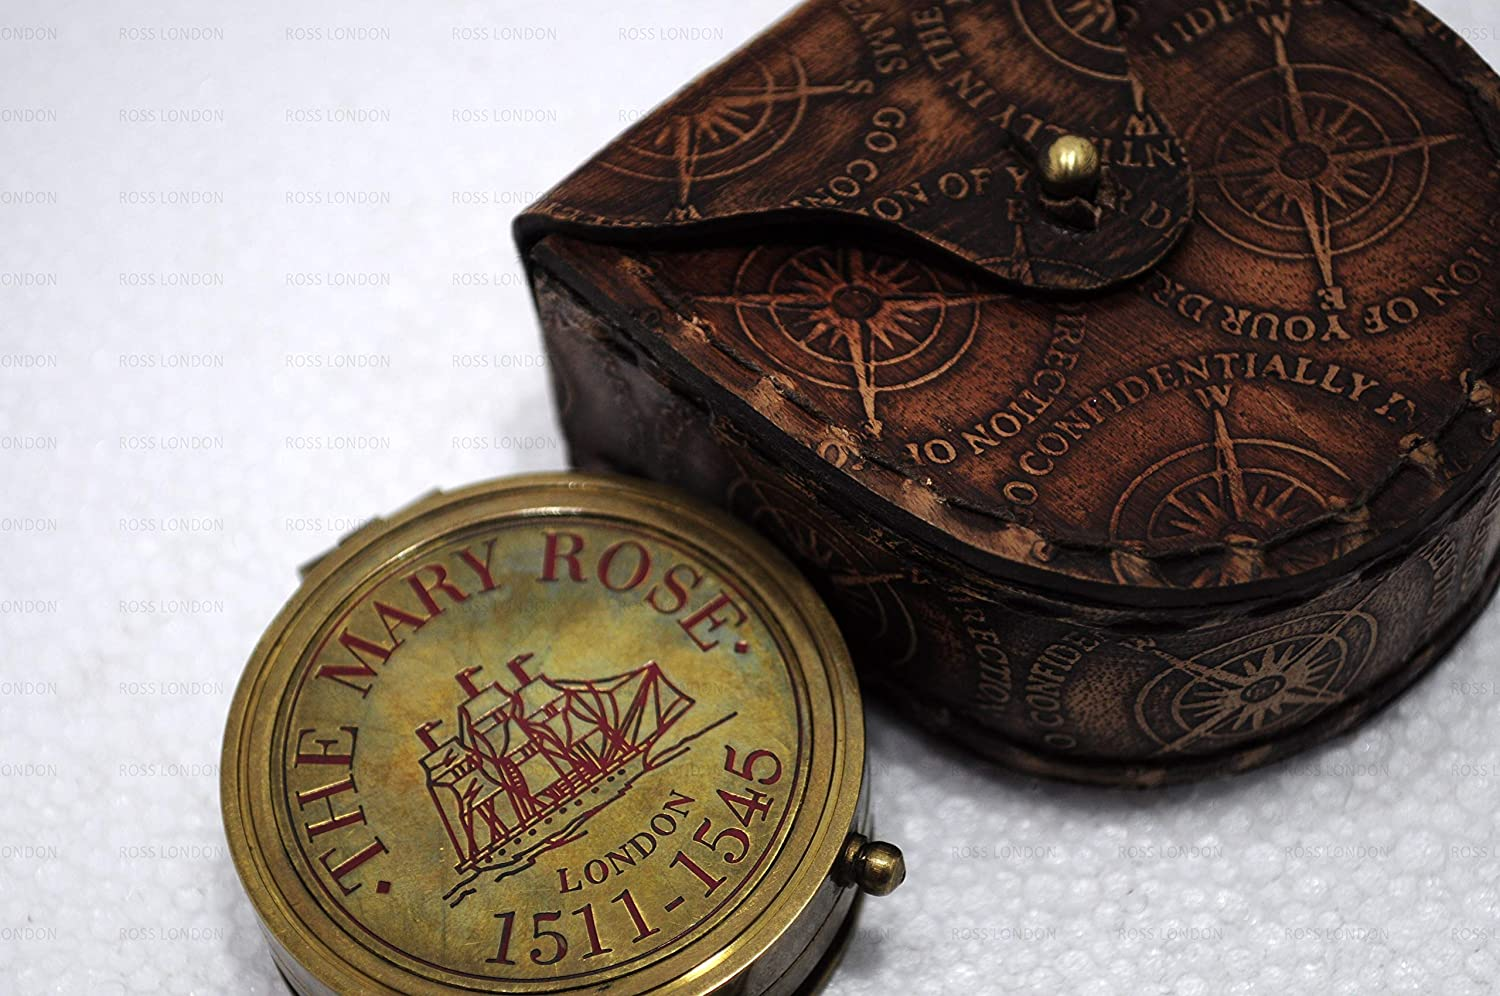 Ideal Gifts. ROSS LONDON Antique Brass The Mary Rose Thread Sundial Compass 1.5 Antique Home D/écor Item